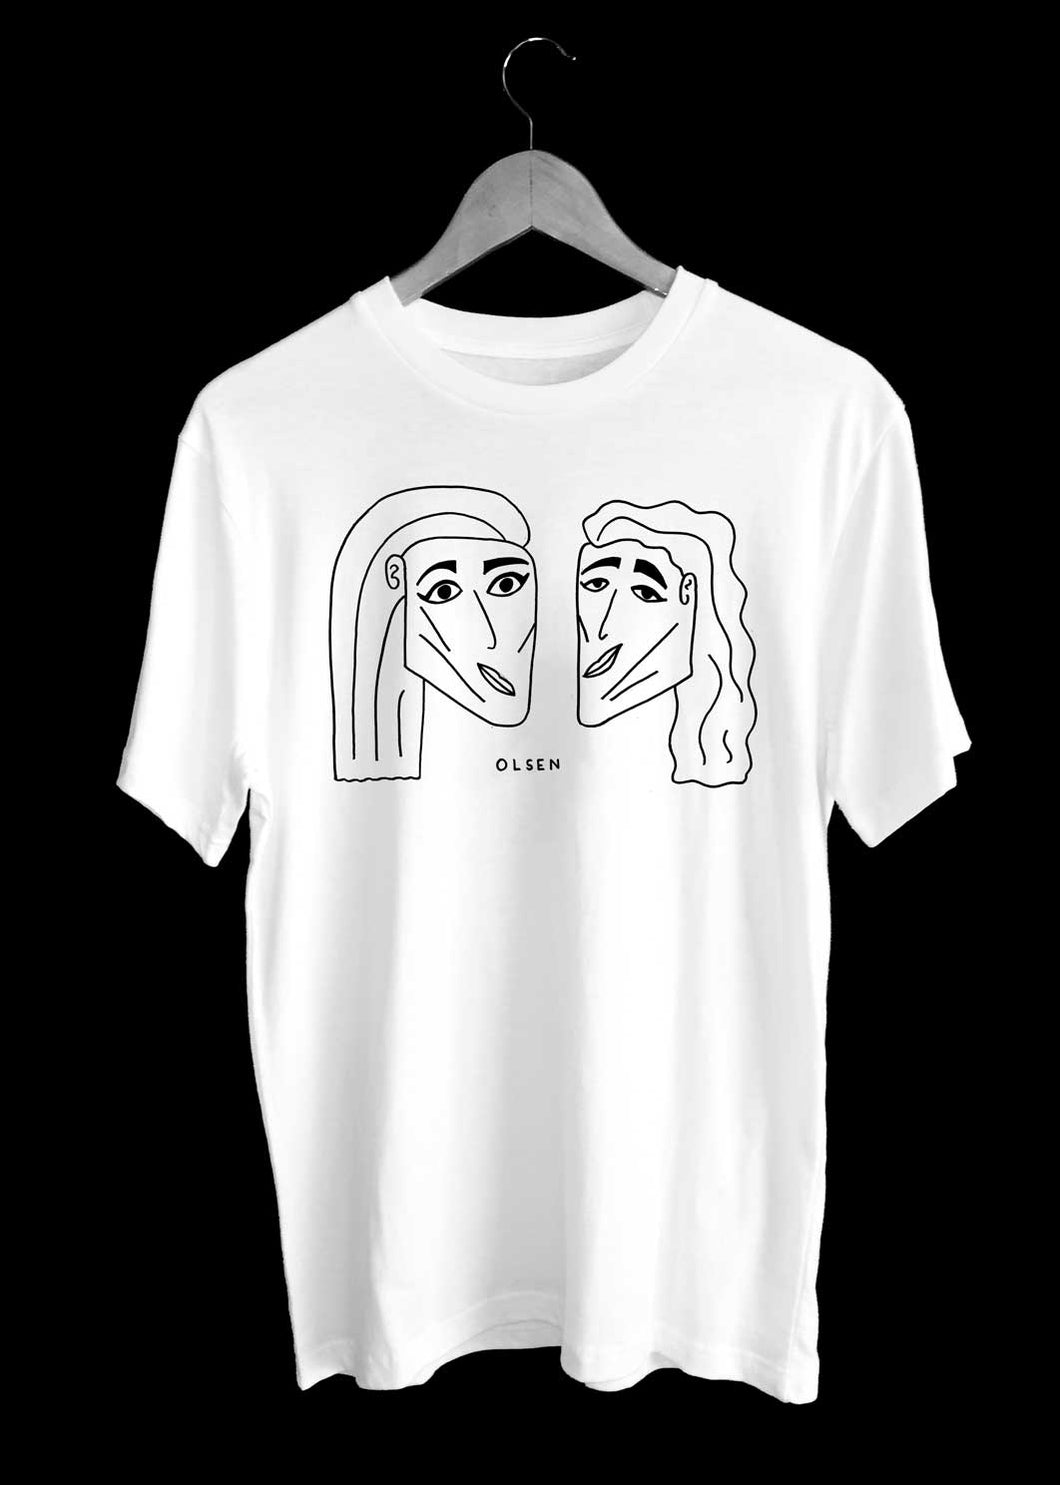 Mary-Kate and Ashley OLSEN Illustration T-Shirt By TILONE